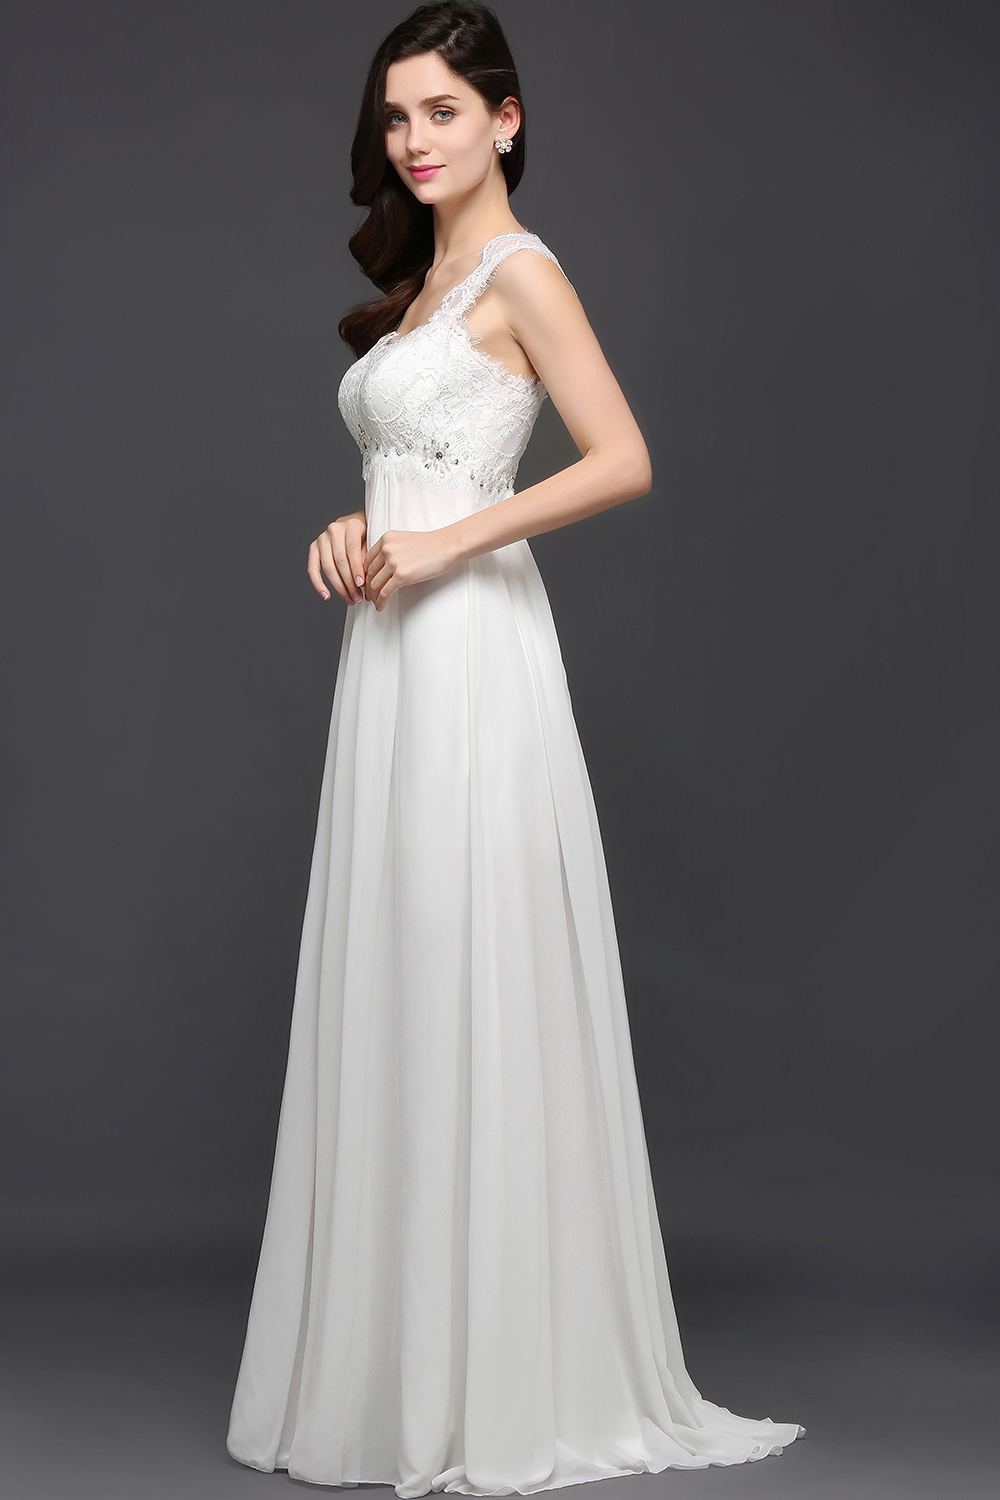 f3a9ff6a9896fd Many of our dresses can also be tailor made to order using the measurements  you provide us. For tips on how to provide your accurate measurements